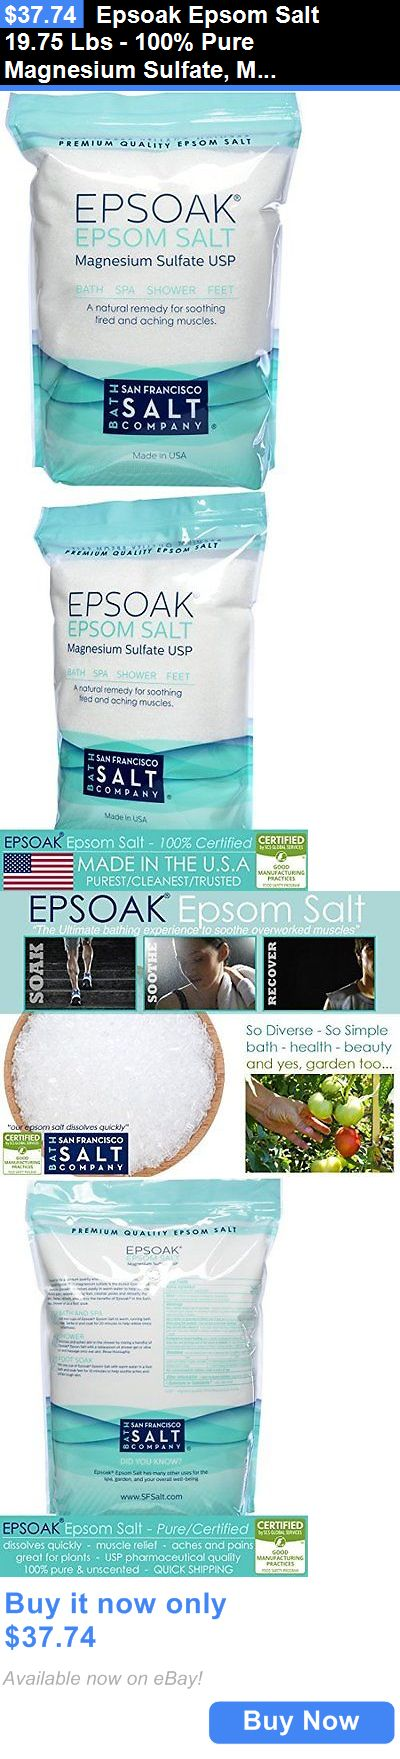 Bath Salts: Epsoak Epsom Salt 19.75 Lbs - 100% Pure Magnesium Sulfate, Made In Usa BUY IT NOW ONLY: $37.74